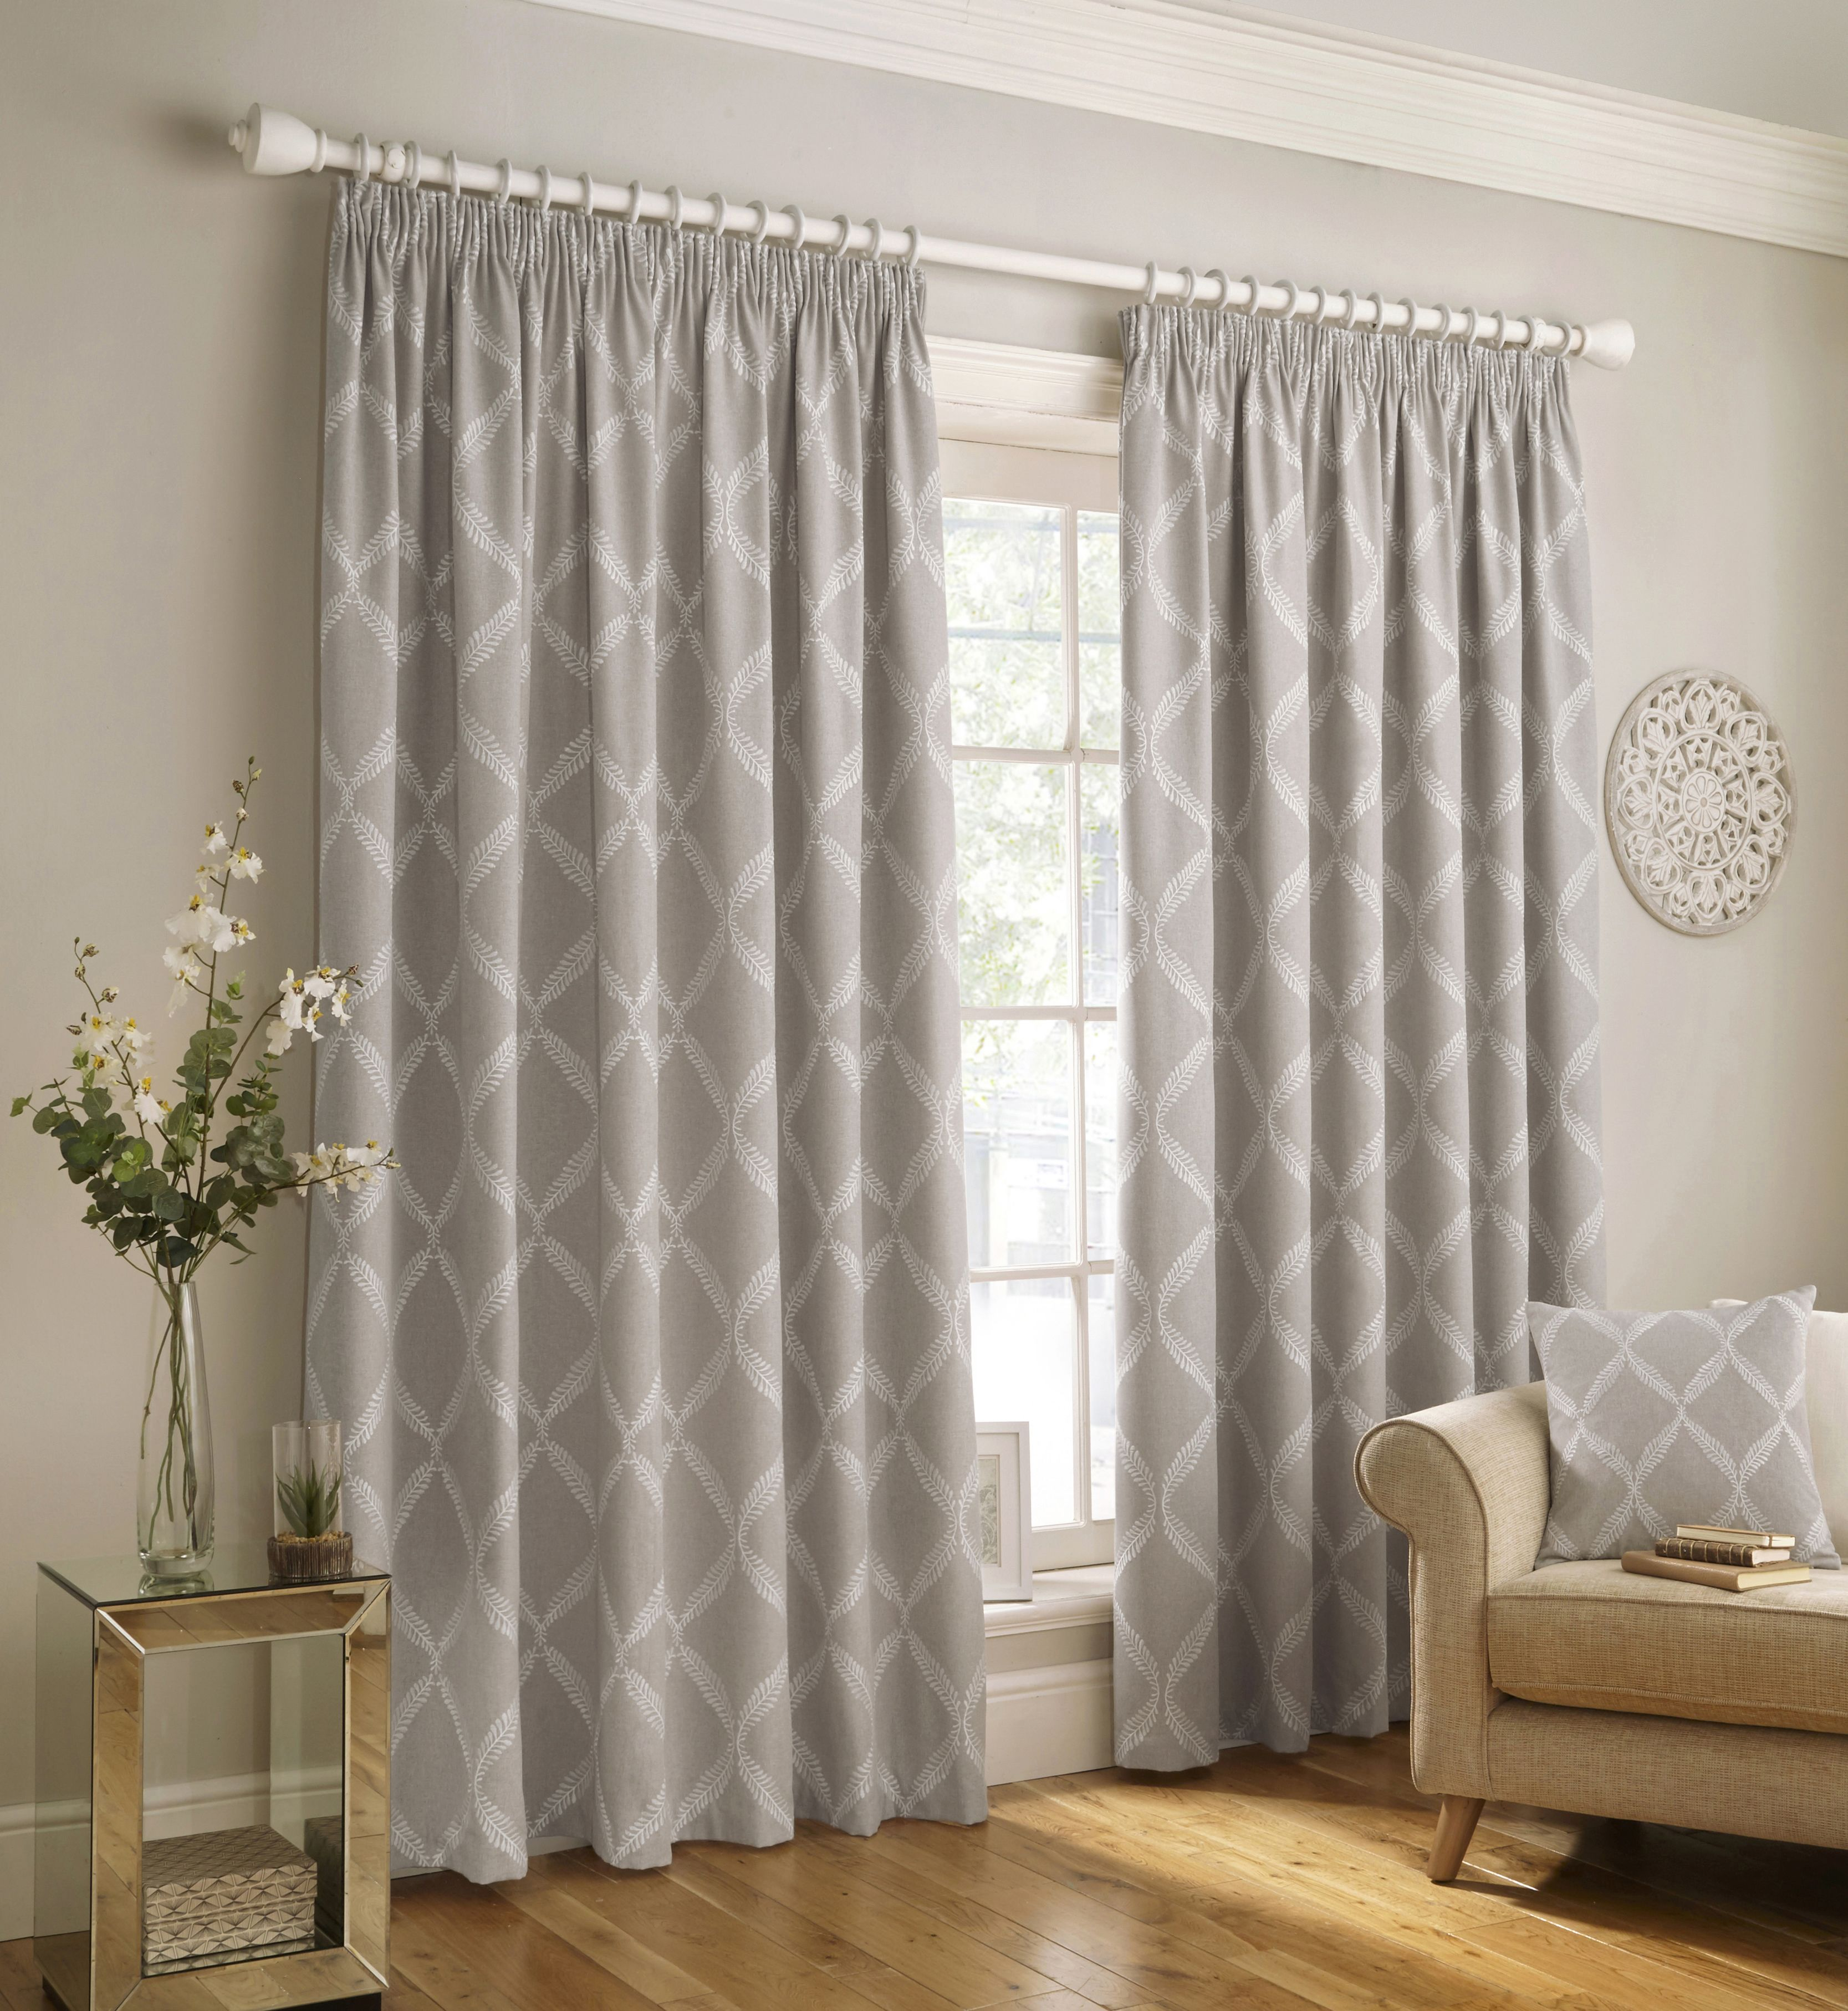 Olivia Embroidered Pencil Pleat Curtains in Grey